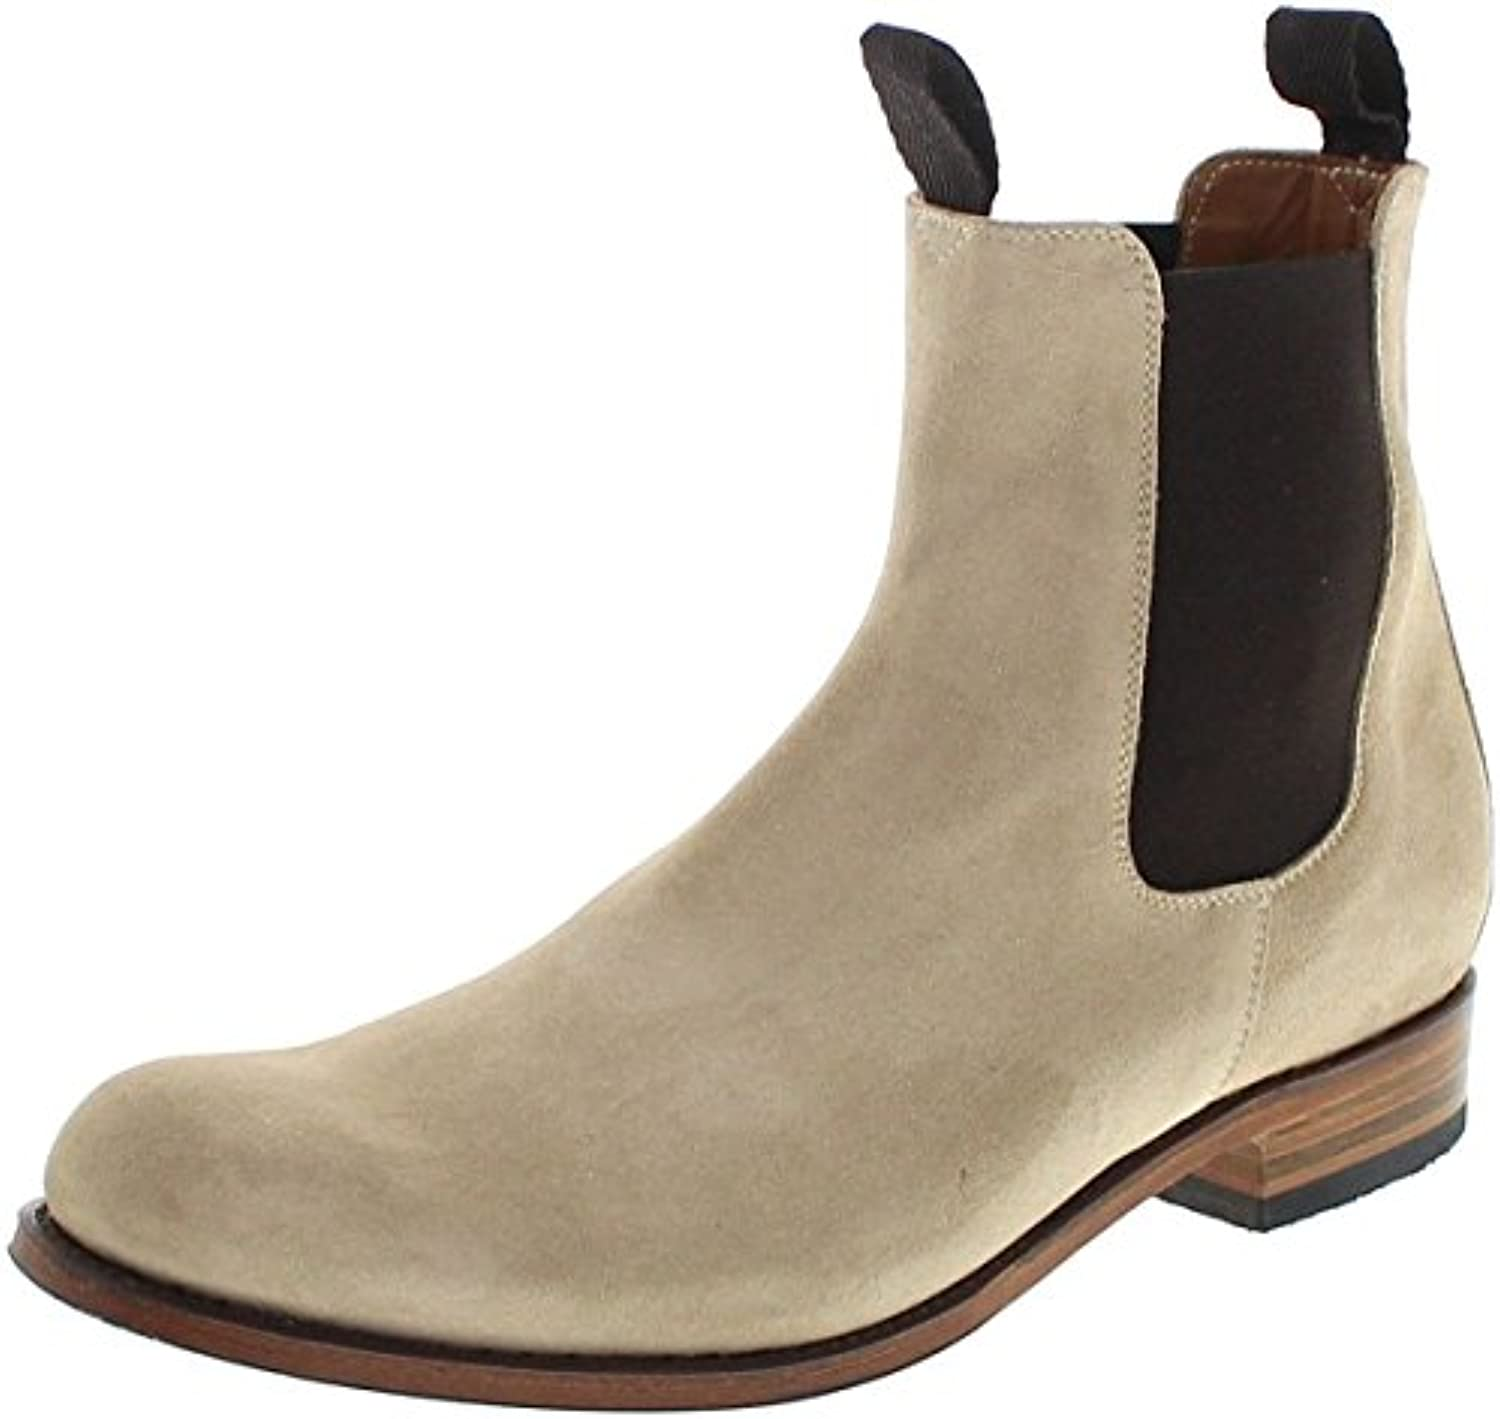 FB Fashion Boots Sendra Boots 5595 Bamby Firenze Chelsea Boots Für Herren Chelsea Boots Beige